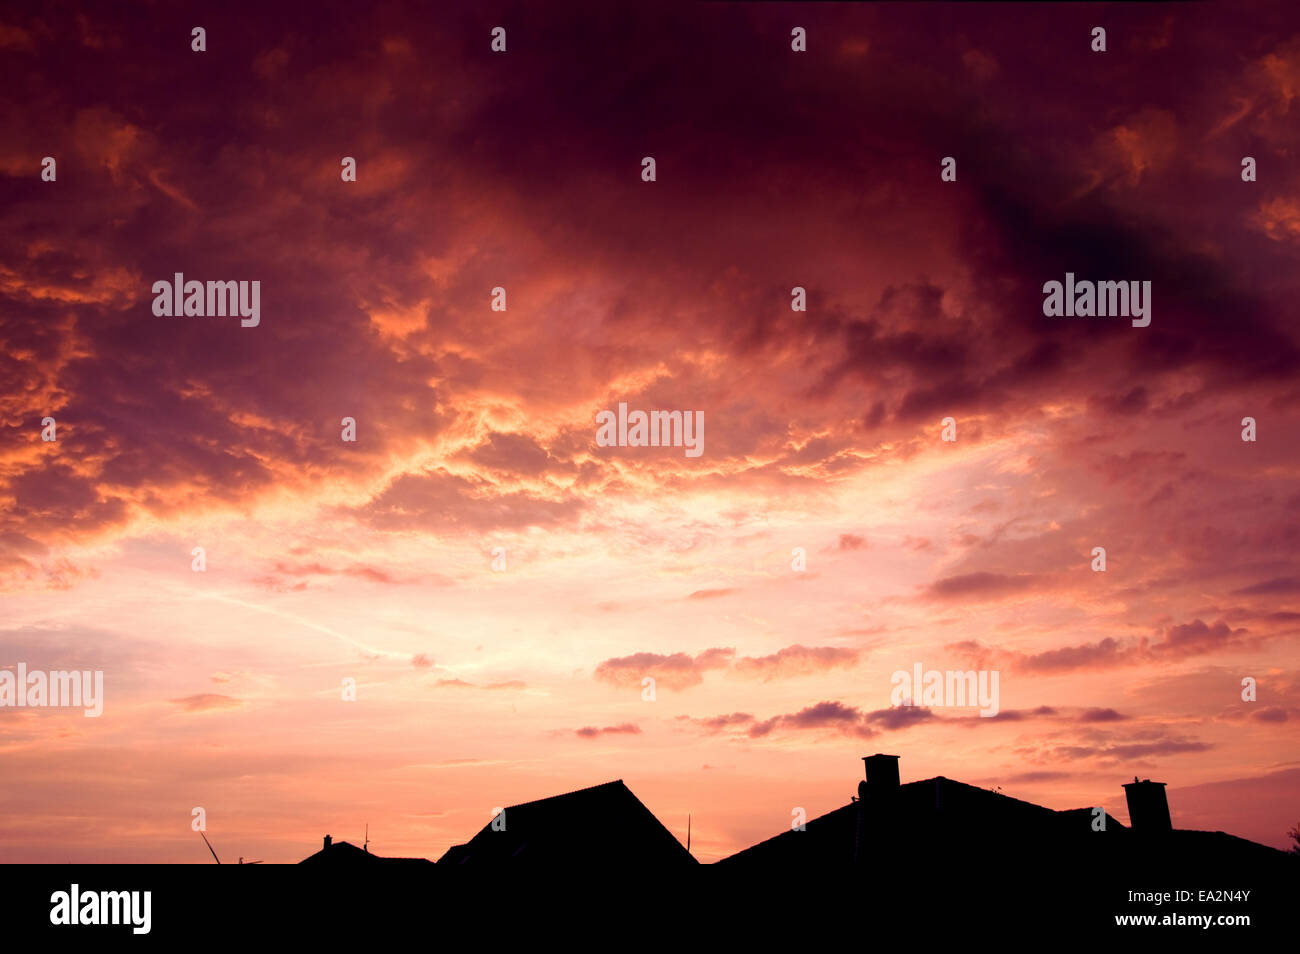 Sunset red sky with dark dramatic clouds over houses. Stock Photo